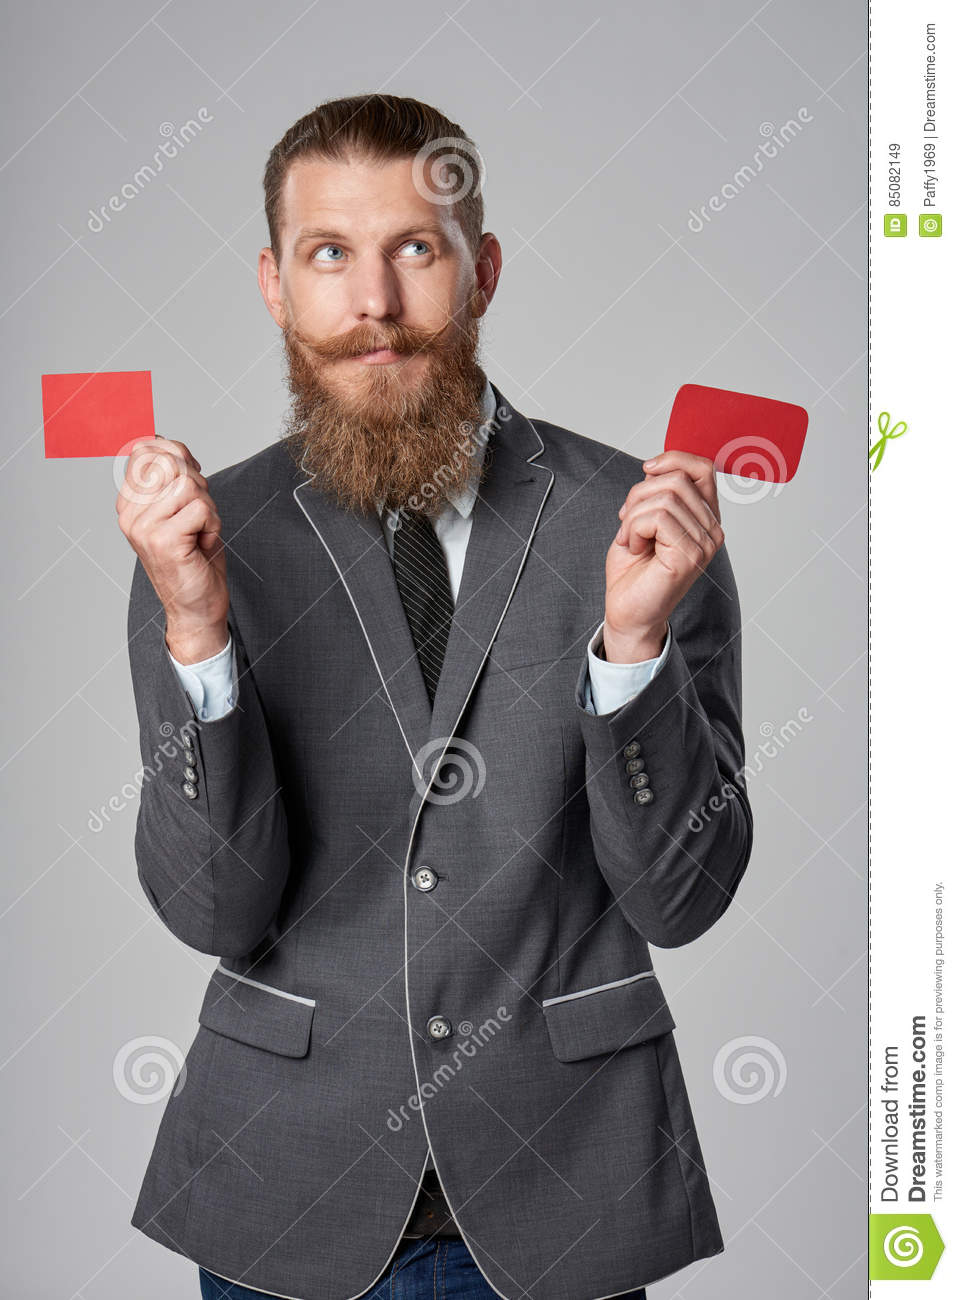 Hipster business man stock image  Image of clubcard, person